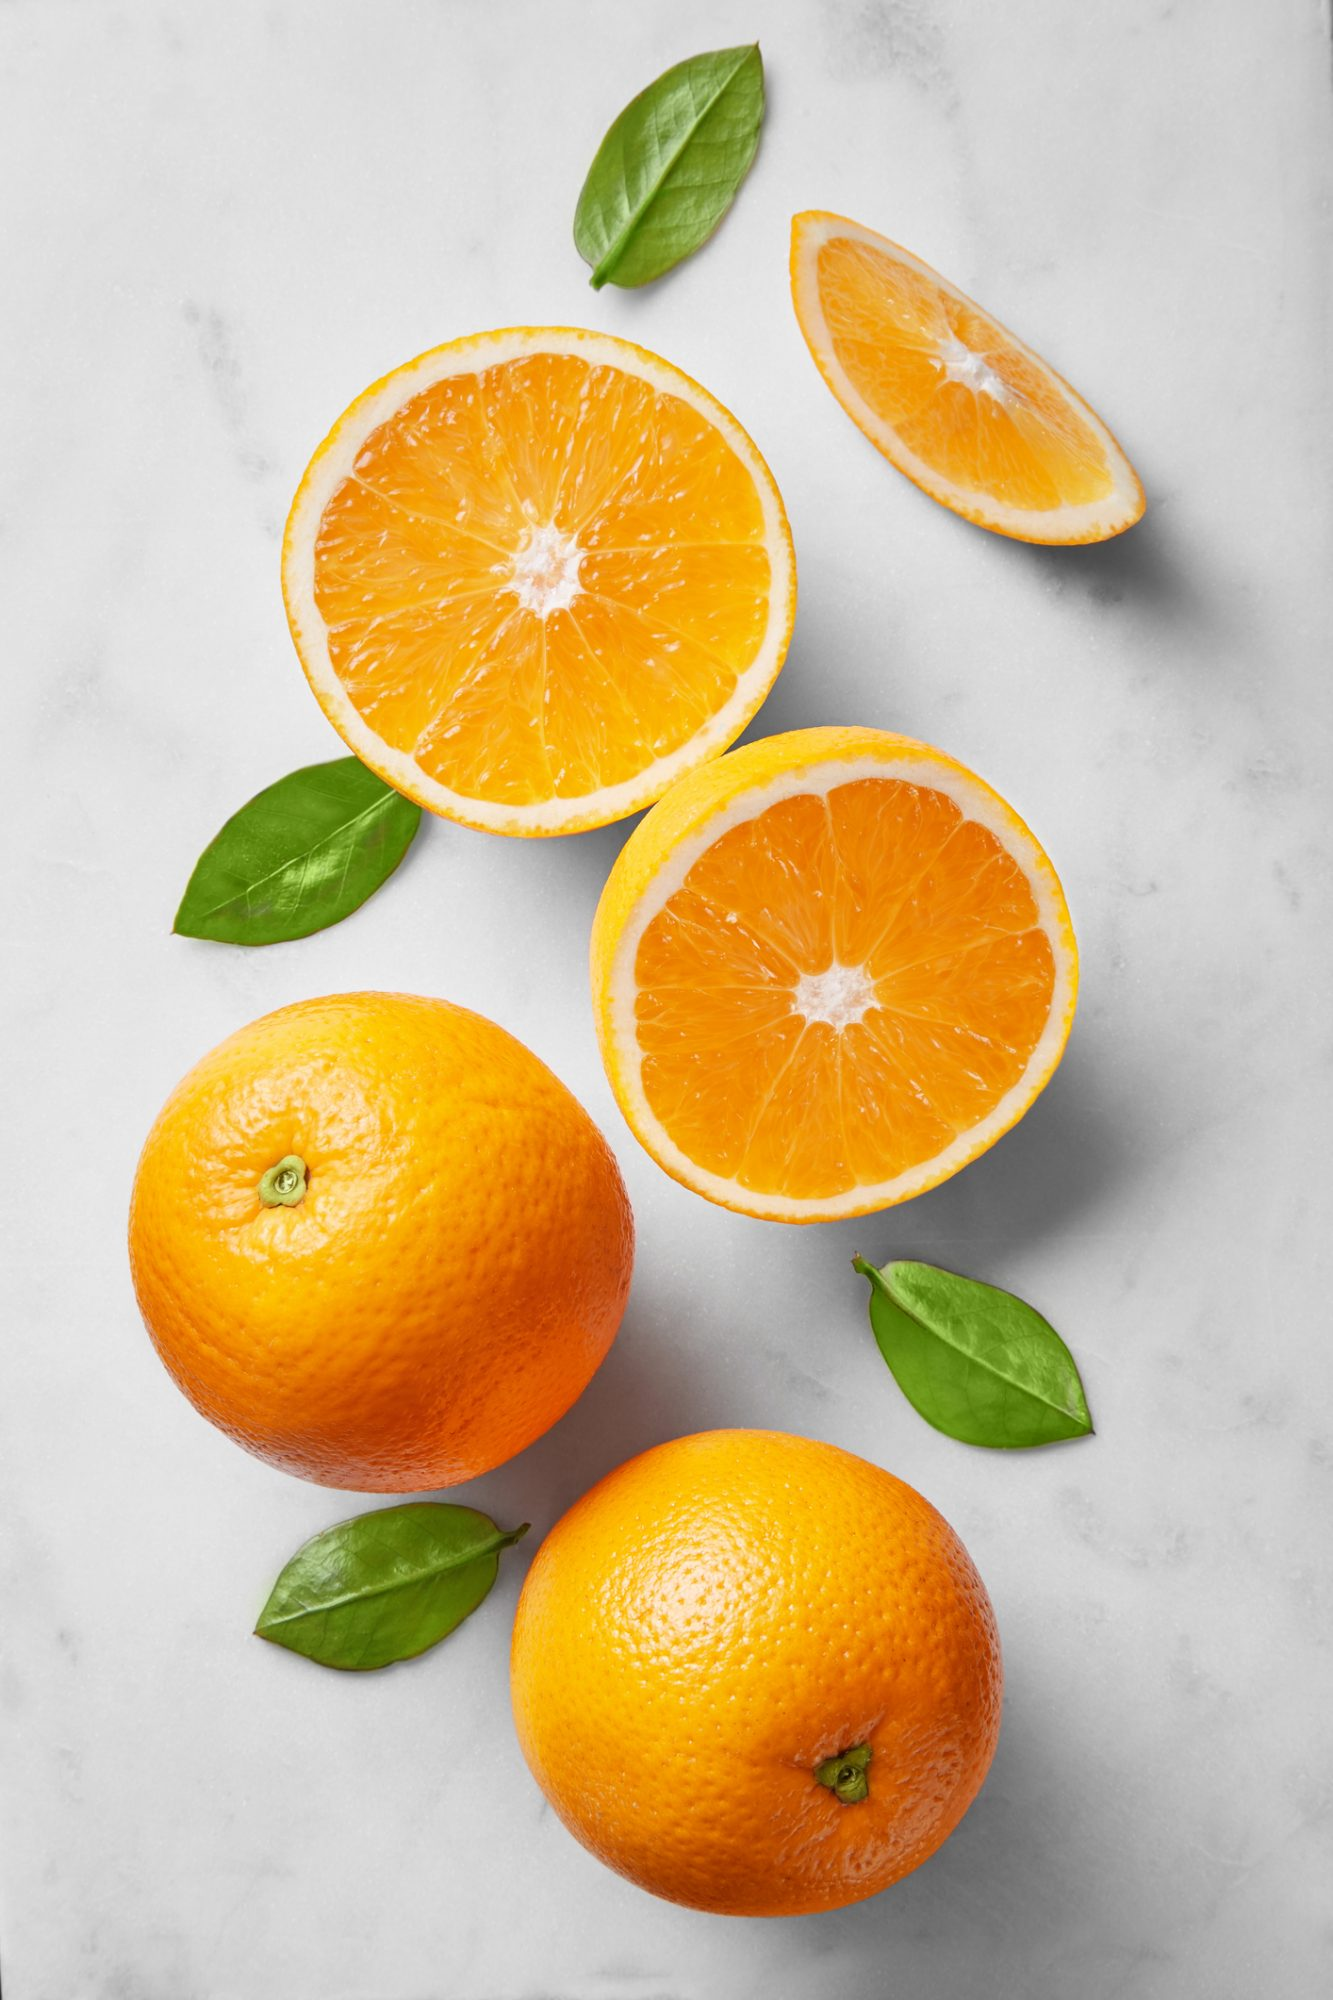 The Best Anti-Aging Foods